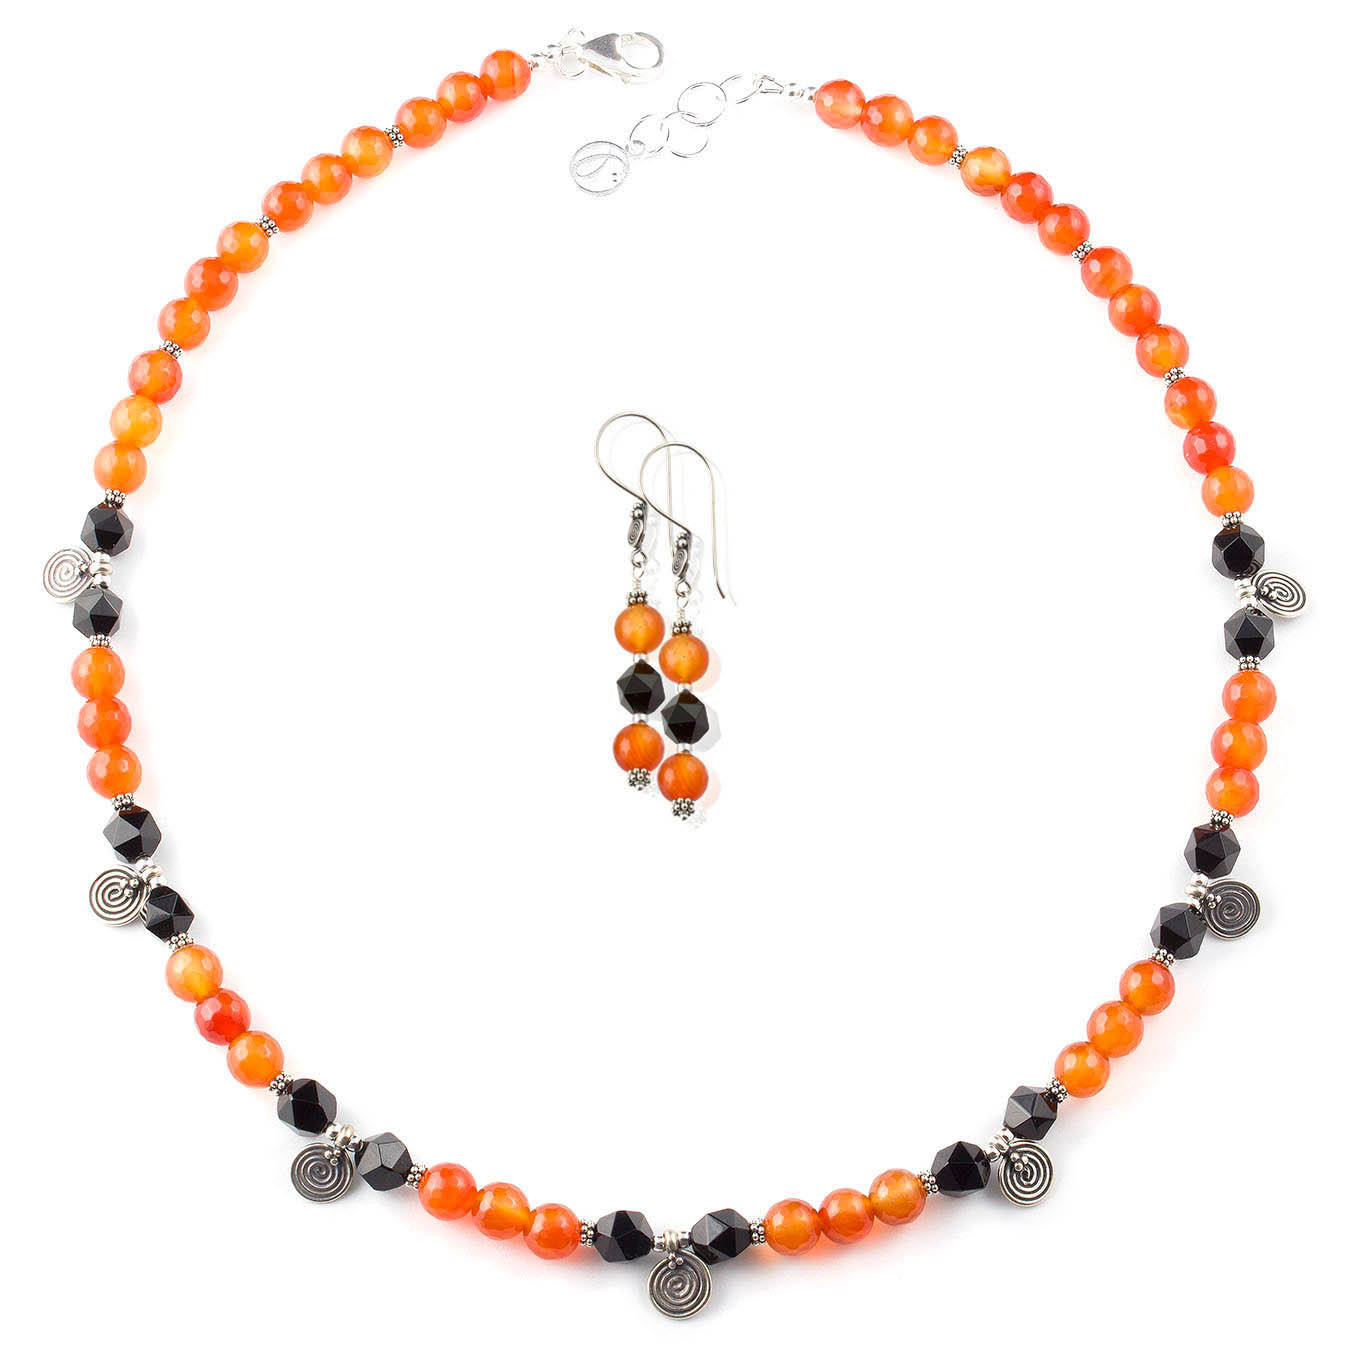 Handmade bali charm jewelry necklace set made of black and red agate